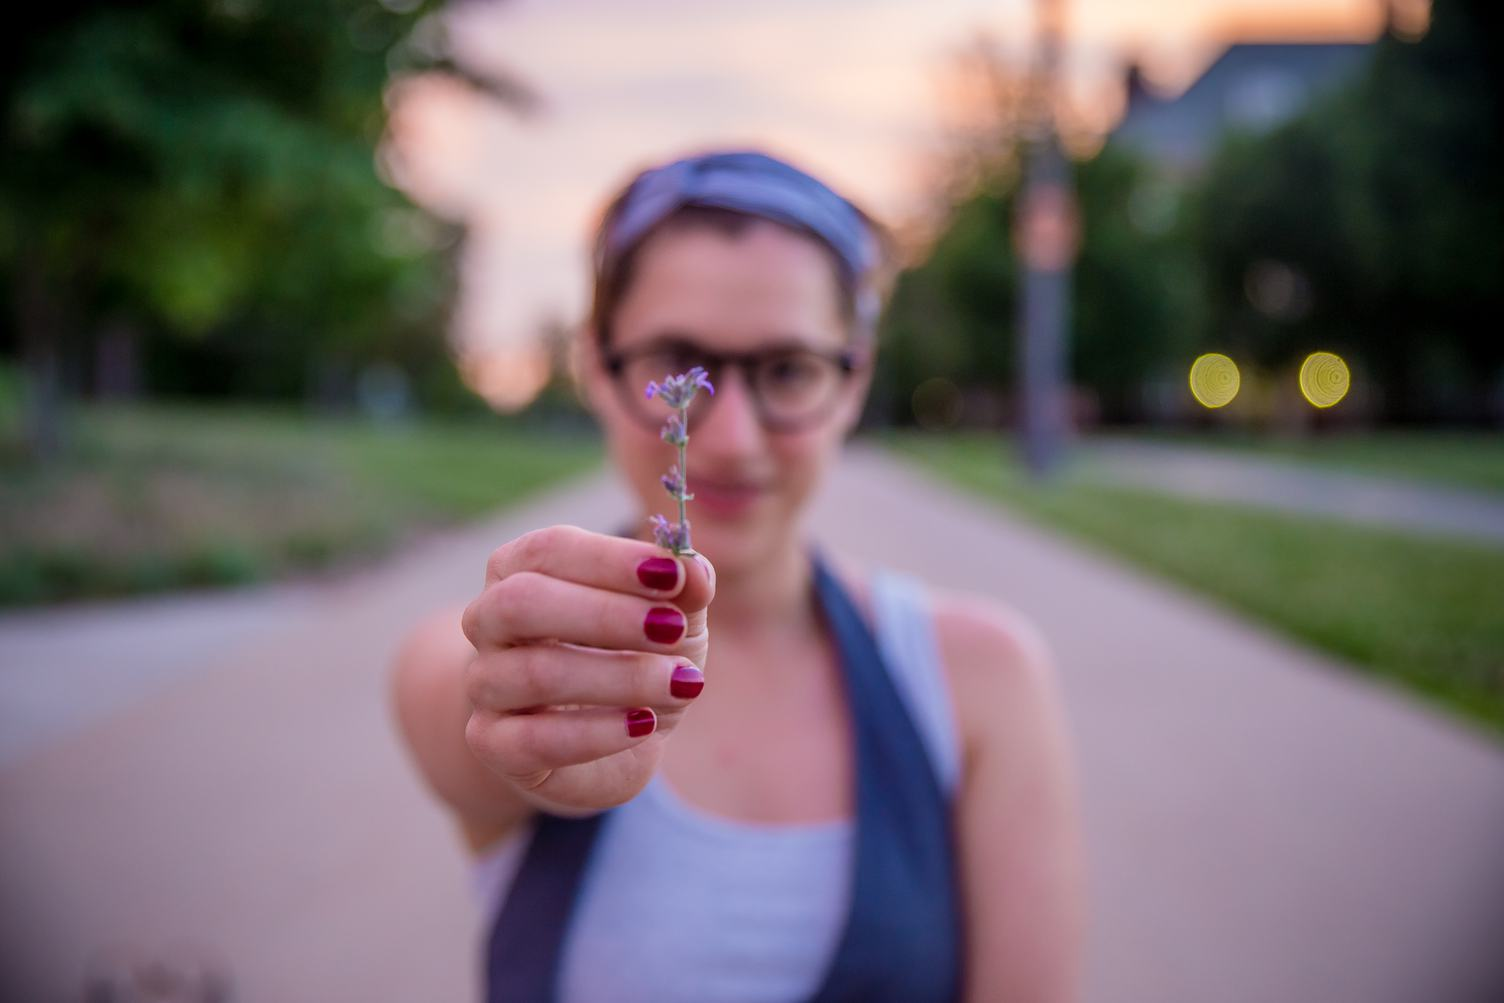 Girl with Red Nail Polish Holding a Single Flower